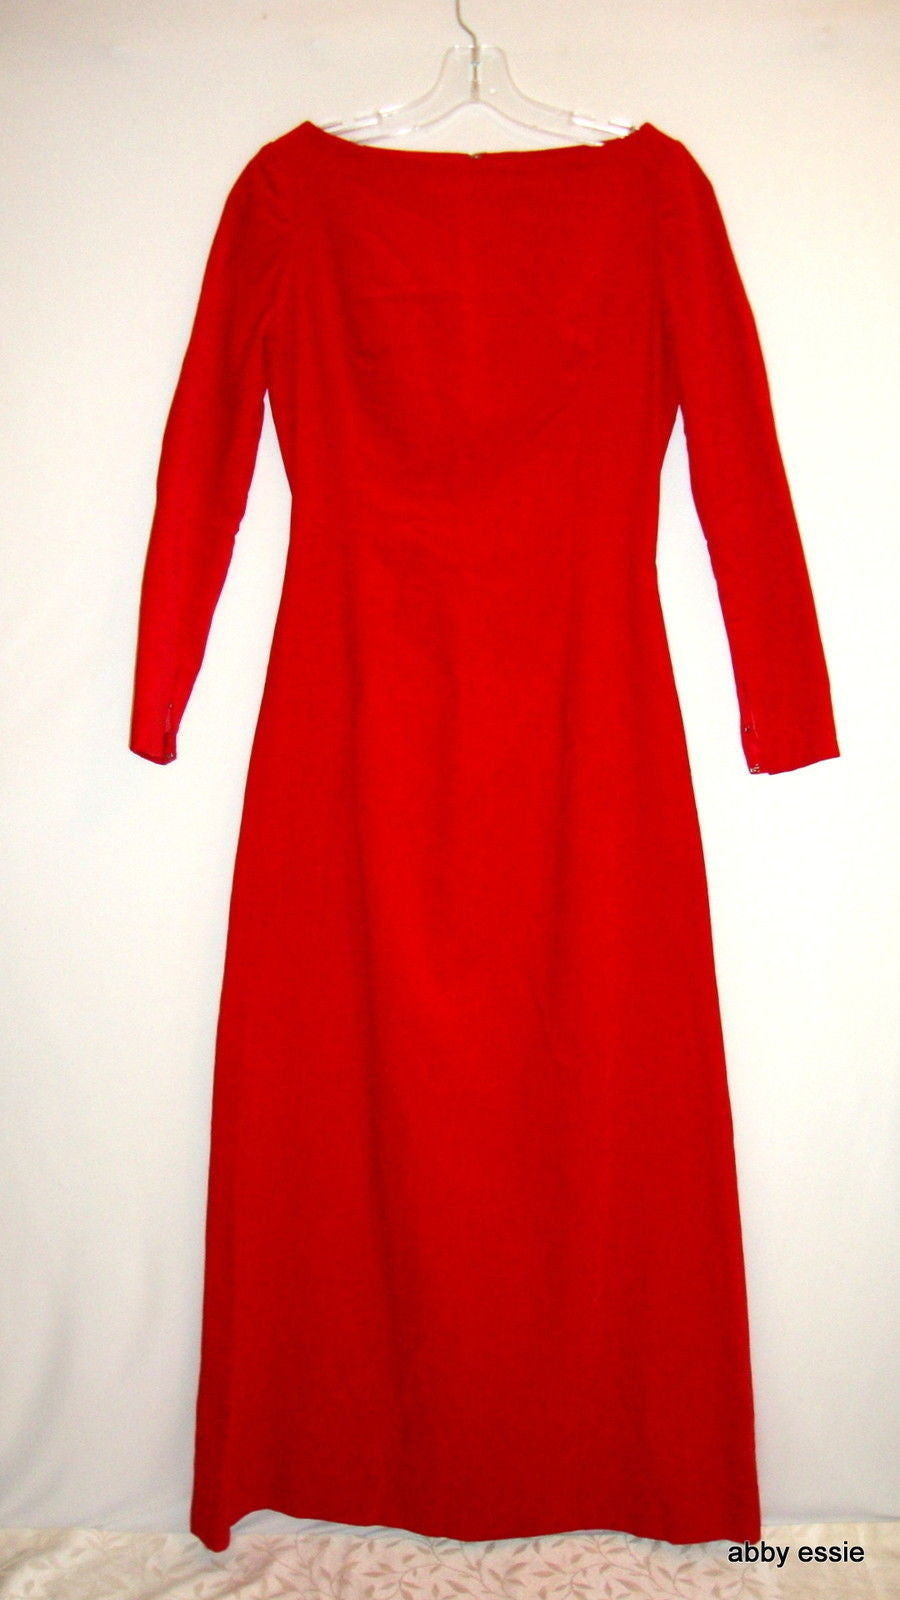 VTG CUSTOM COUTURE RED VELVET FORMAL GAME OF THRONES GOTH GOWN DRESS XS 0 2 4